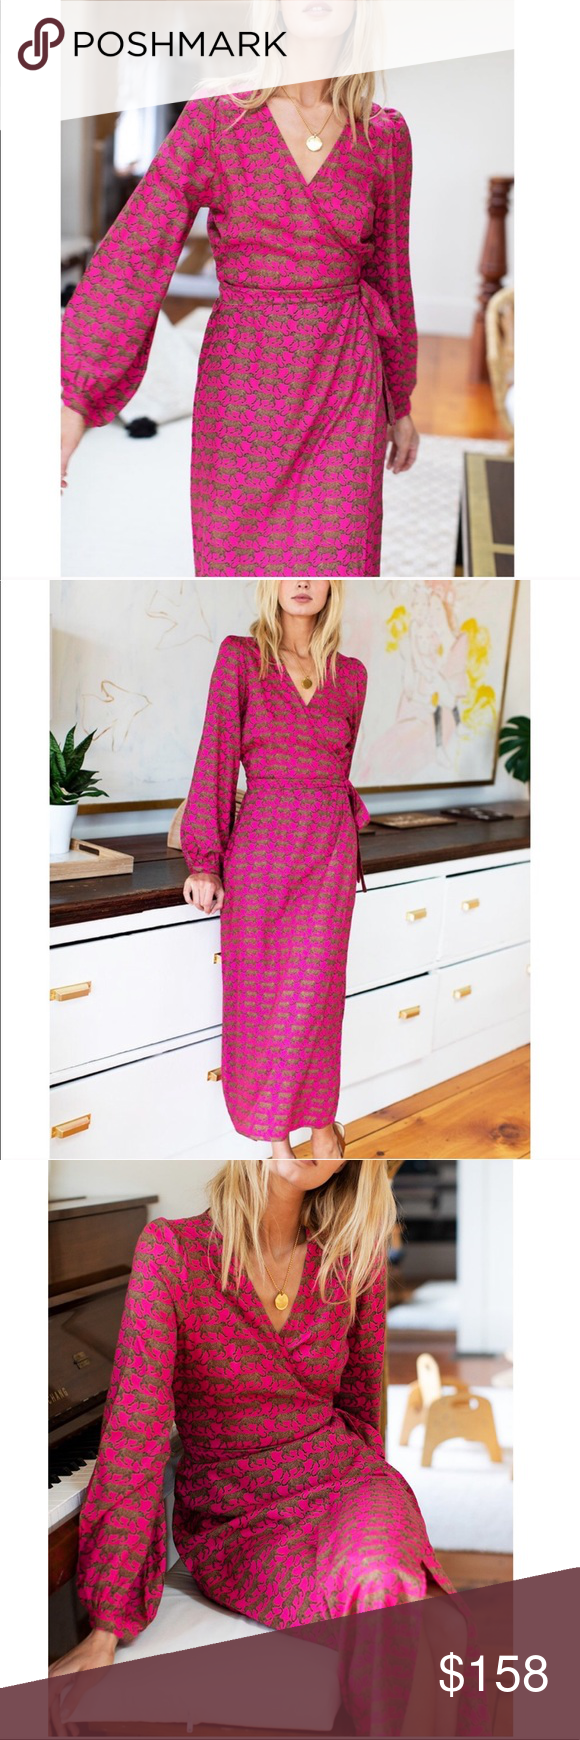 "Emerson Fry Bishop Dress- Pink Walking Cheetah Imperfect item- Size S has dye irregularities(see last pic), XS is missing button at cuff Hand block printed w/ low impact dye Modal Adjustable wrap style dress Set in puff shoulder Bishop style sleeve w/ button closure at wrist  Model is 5'9 wearing a size xs  Hand wash, line dry  Made in Rajasthan, India  XS: Center Back Length 47 1/2, Bust 33"", Waist 26"", Hip 37"" S: Center Back Length 48, Bust 35"", Waist 28"", Hip 39 Emerson Fry Dresse #emersonfry"